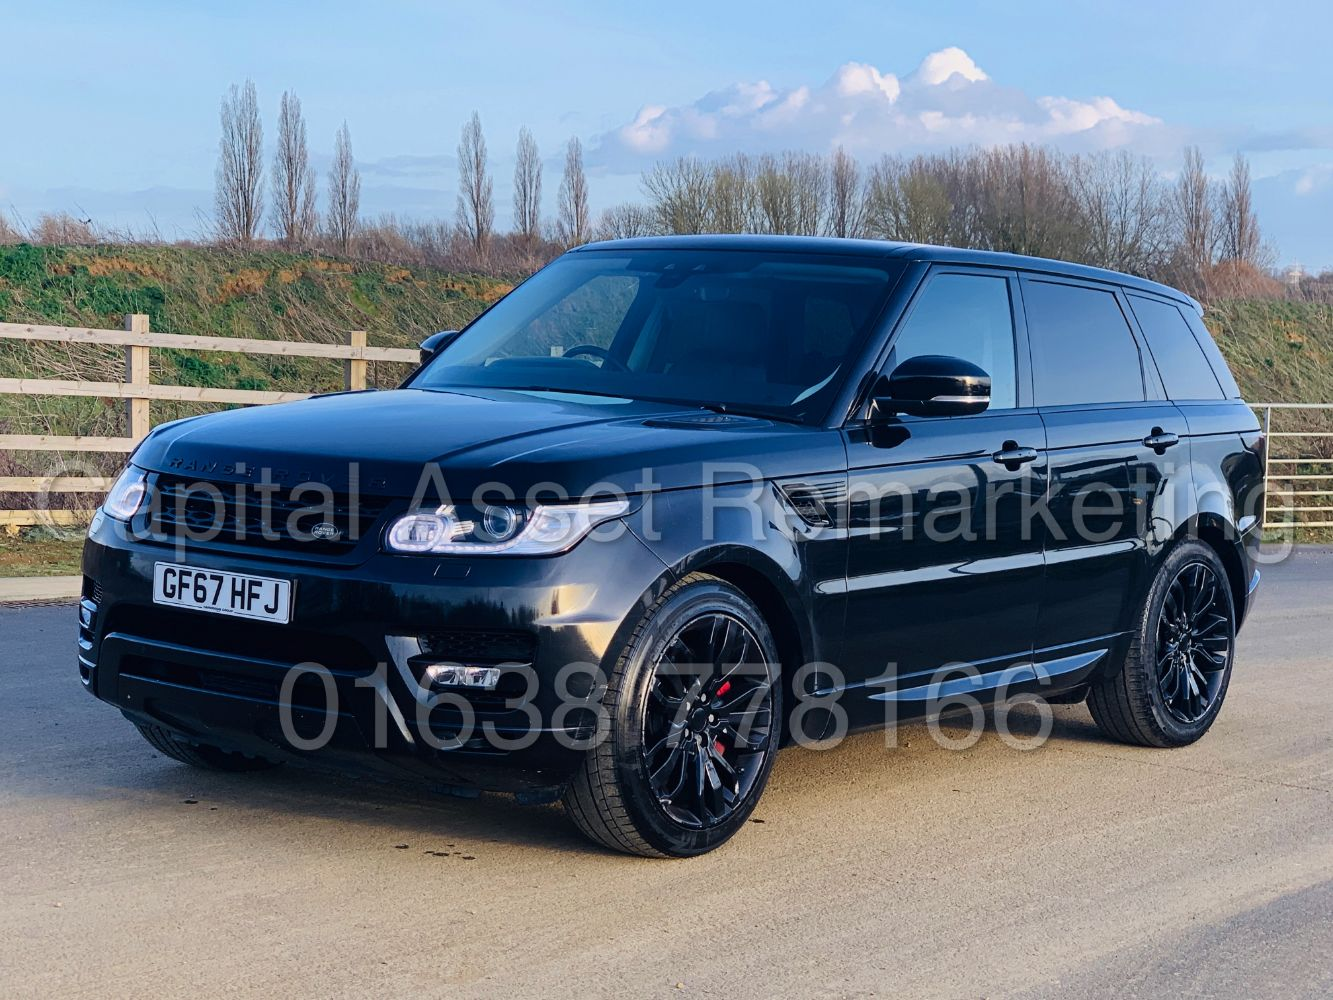 2018 Range Rover Sport *HSE - Black Edition* 3.0 SDV6 Auto - 2017 Mercedes-Benz C43 AMG *Cabriolet* + Many More: Cars, Commercials & 4x4's